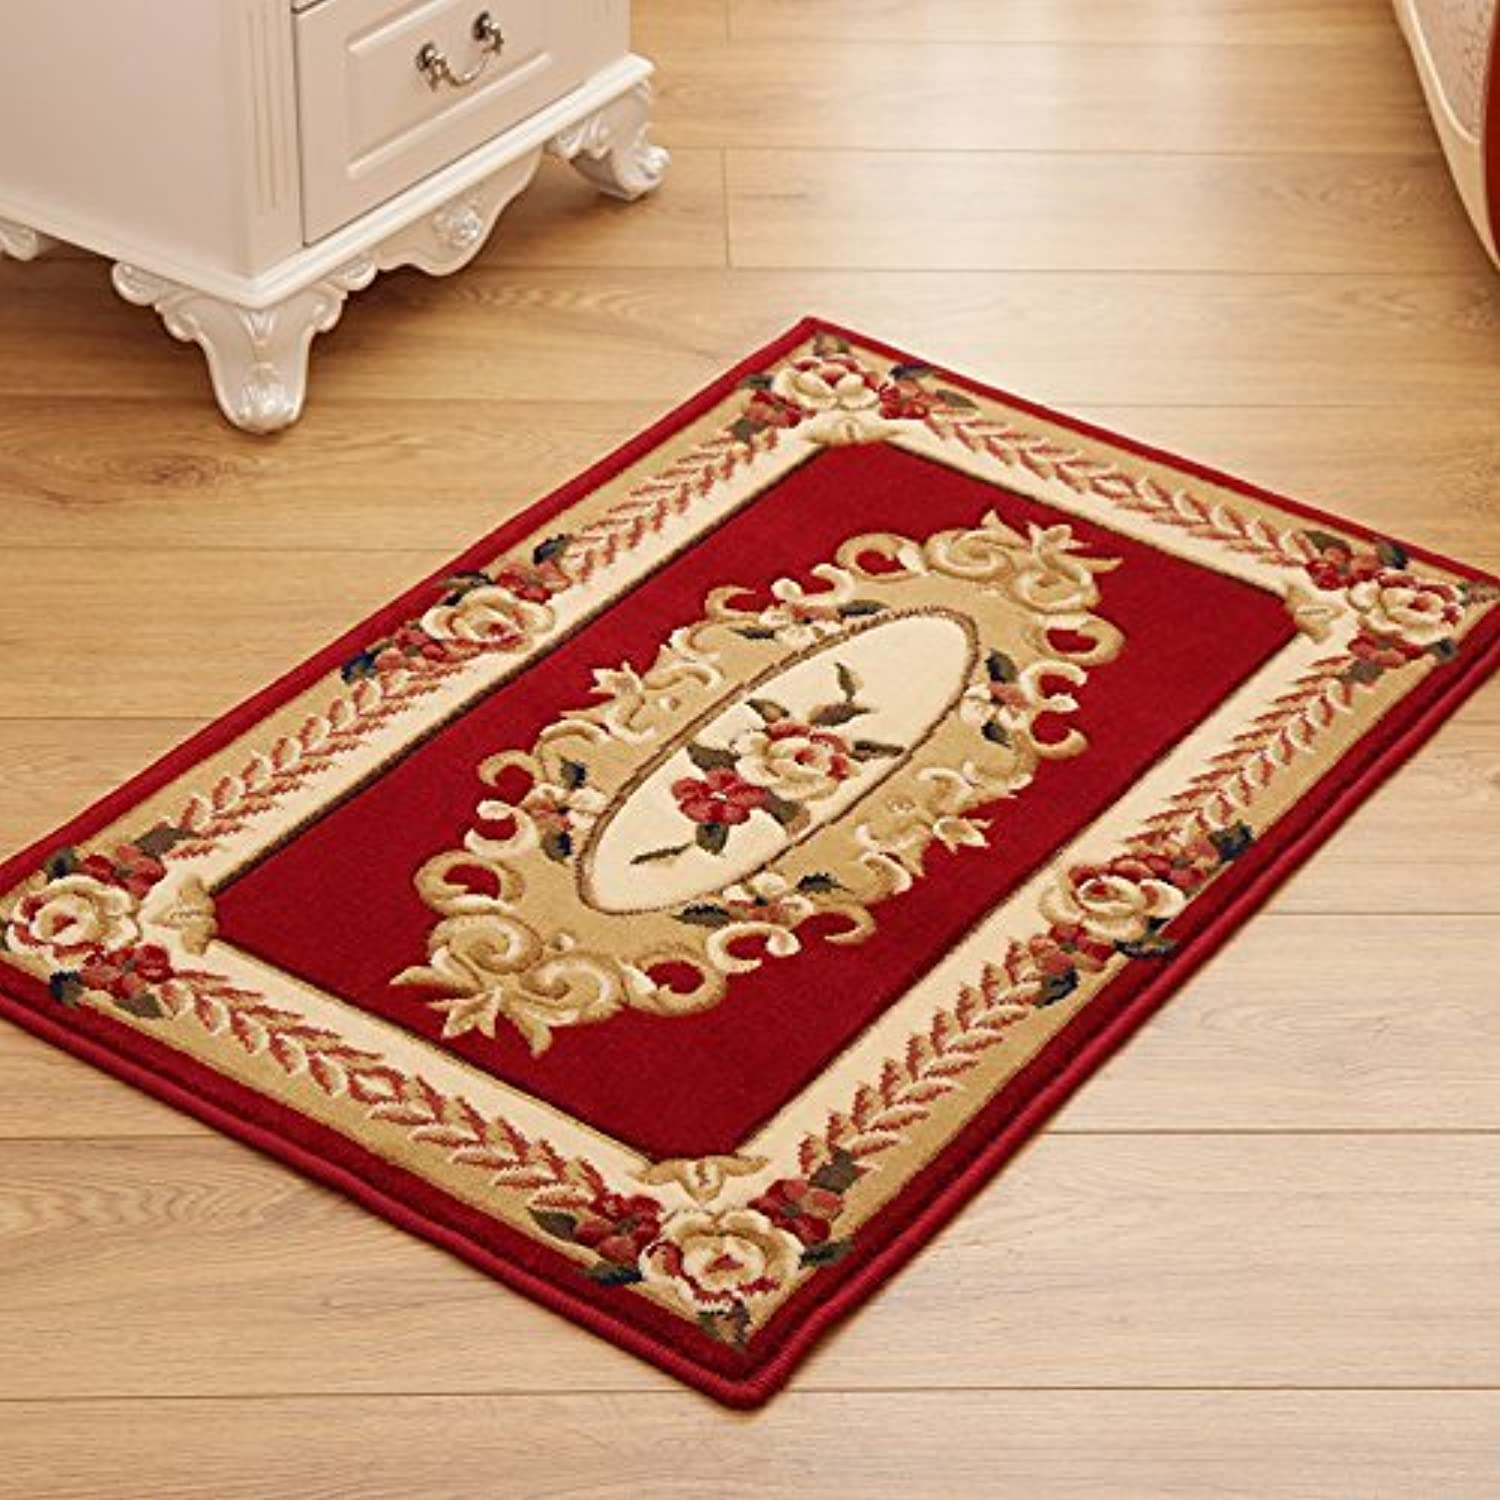 HOMEE Carpet Parlor Door Entrance Mats Adhering the Pads on the Suction Feet Bedroom Bed Blankets